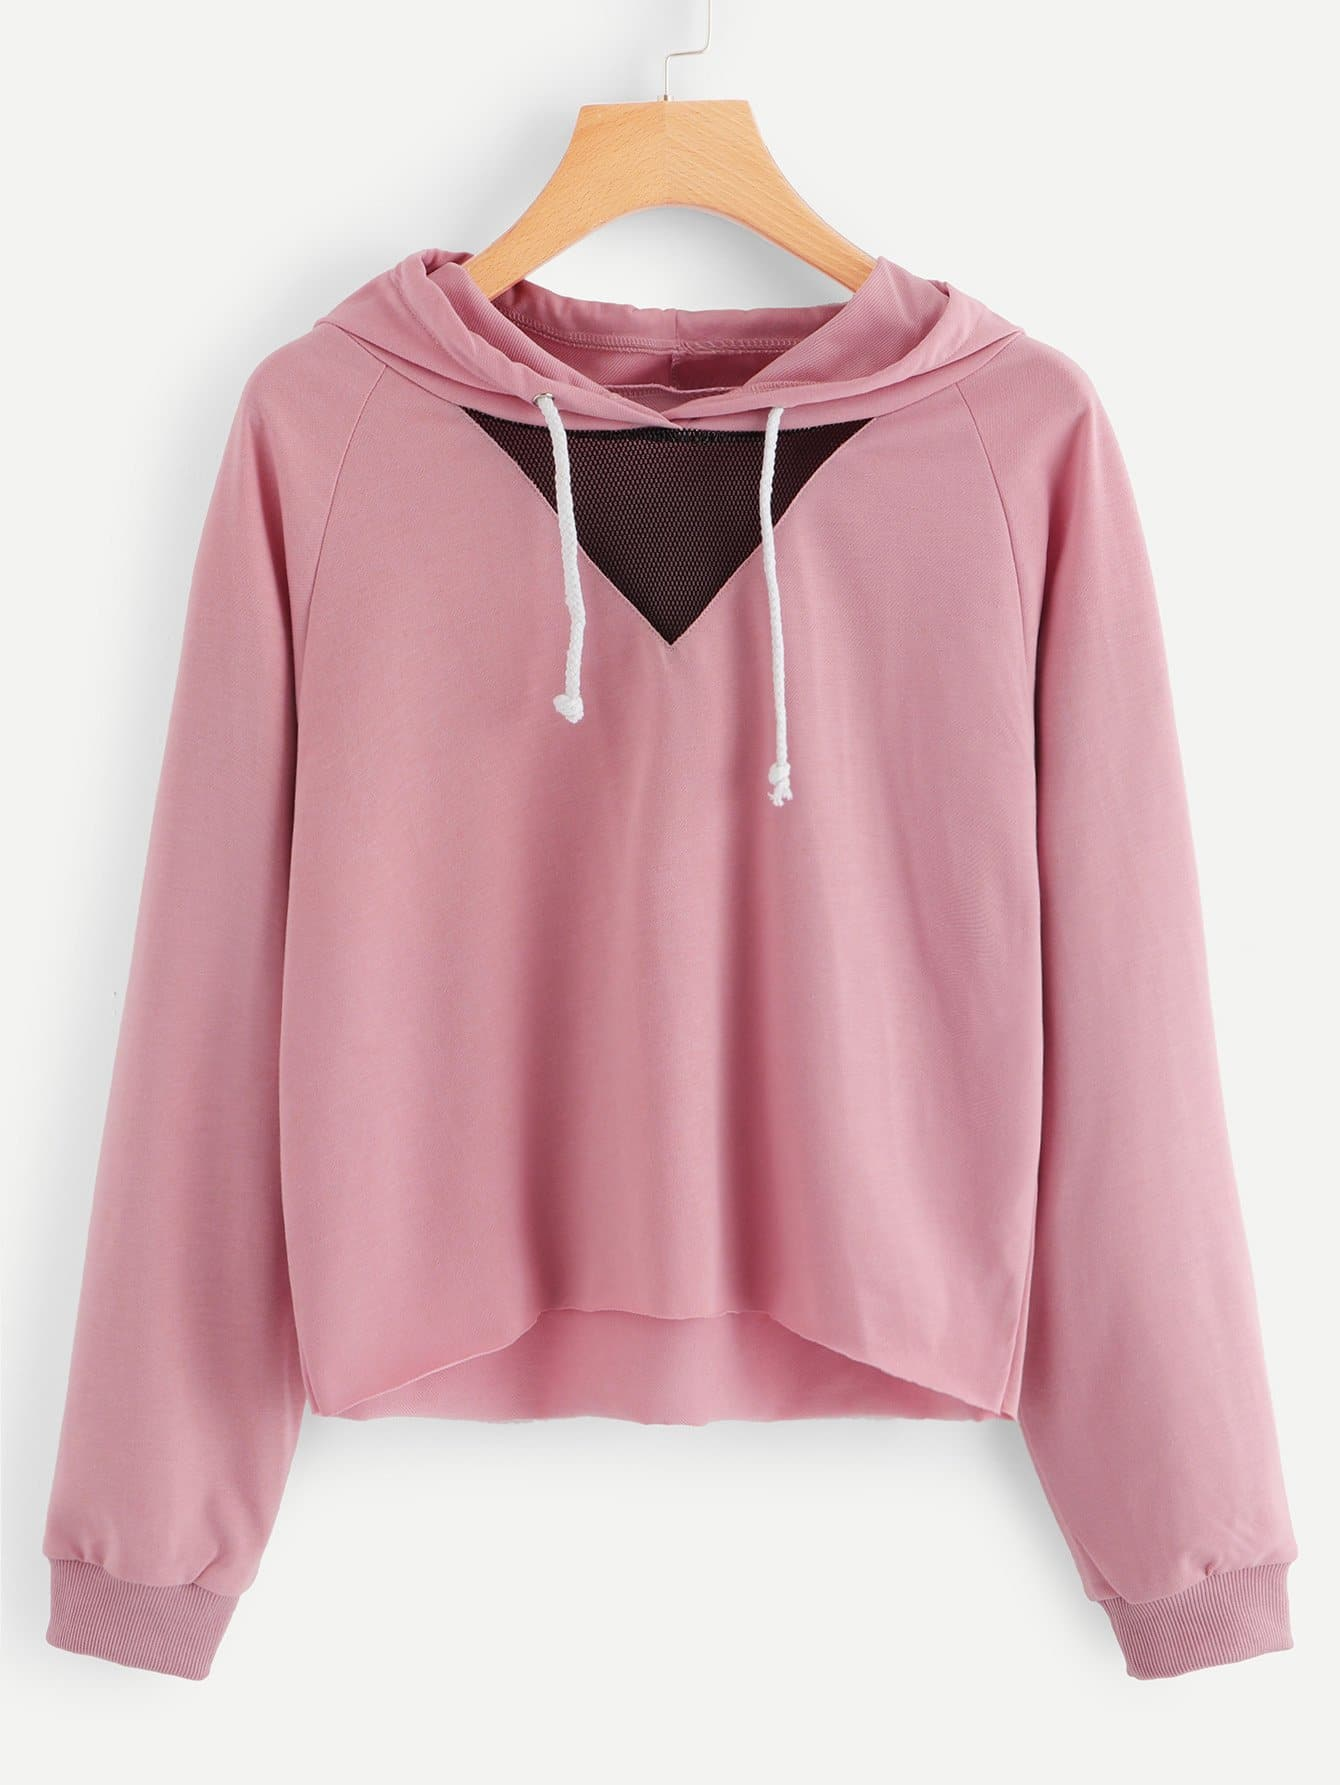 Contrast Mesh Hooded Sweatshirt